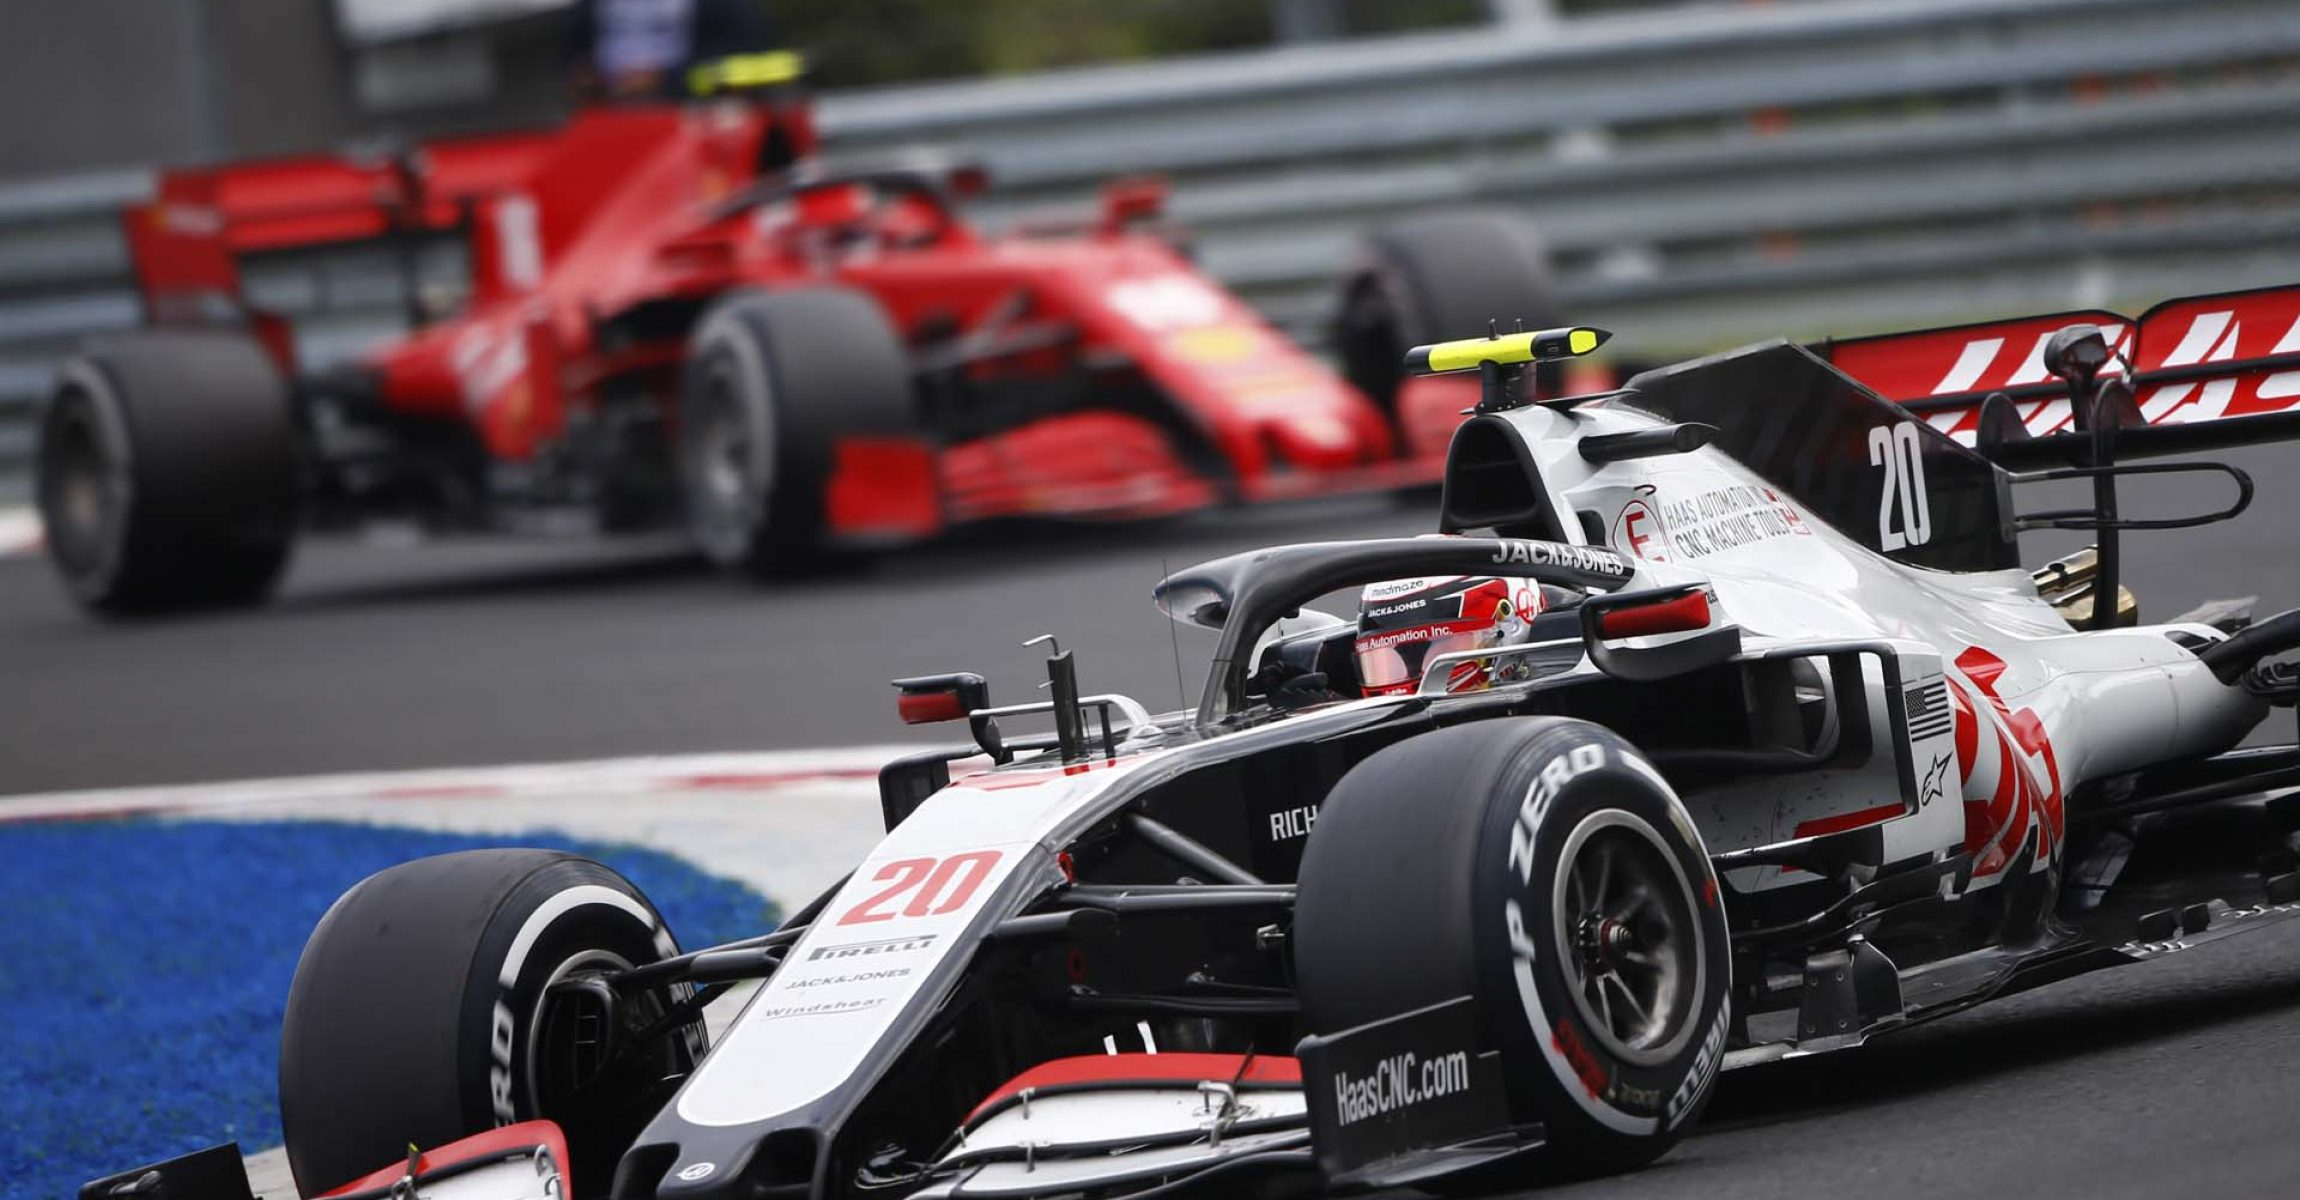 HUNGARORING, HUNGARY - JULY 19: Kevin Magnussen, Haas VF-20, leads Charles Leclerc, Ferrari SF1000 during the Hungarian GP at Hungaroring on Sunday July 19, 2020 in Budapest, Hungary. (Photo by Andy Hone / LAT Images)